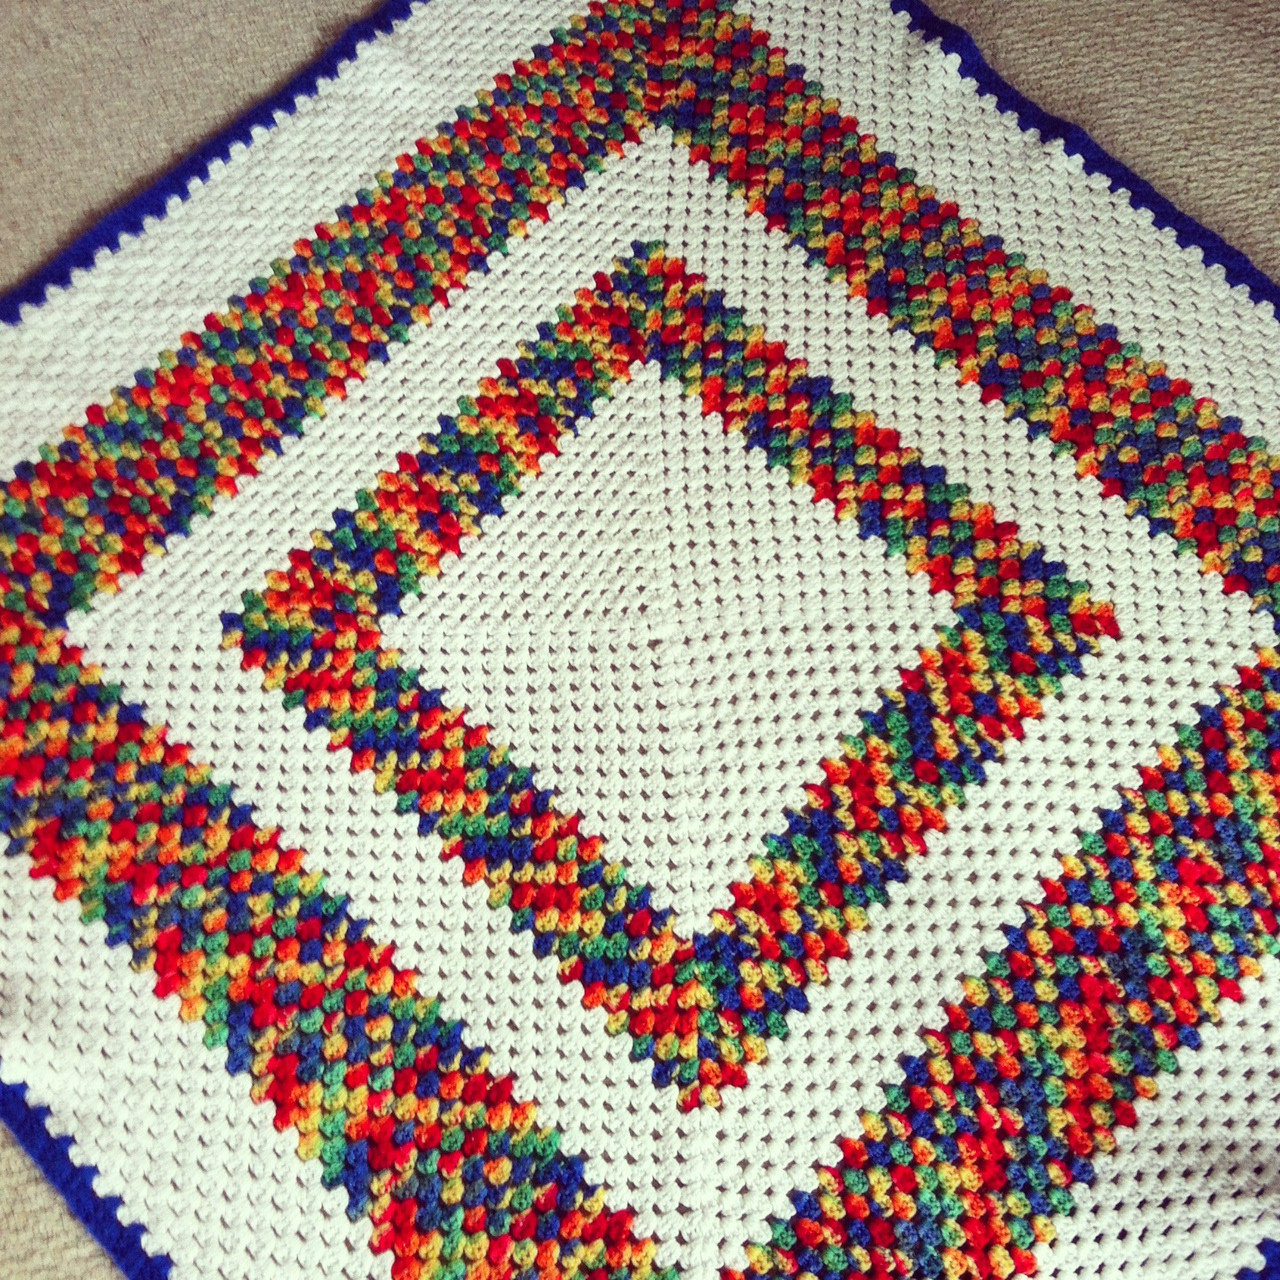 New Vintage Finds Granny Square Crochet Afghans Hello Crochet Granny Square Afghan Of Beautiful 46 Pictures Crochet Granny Square Afghan